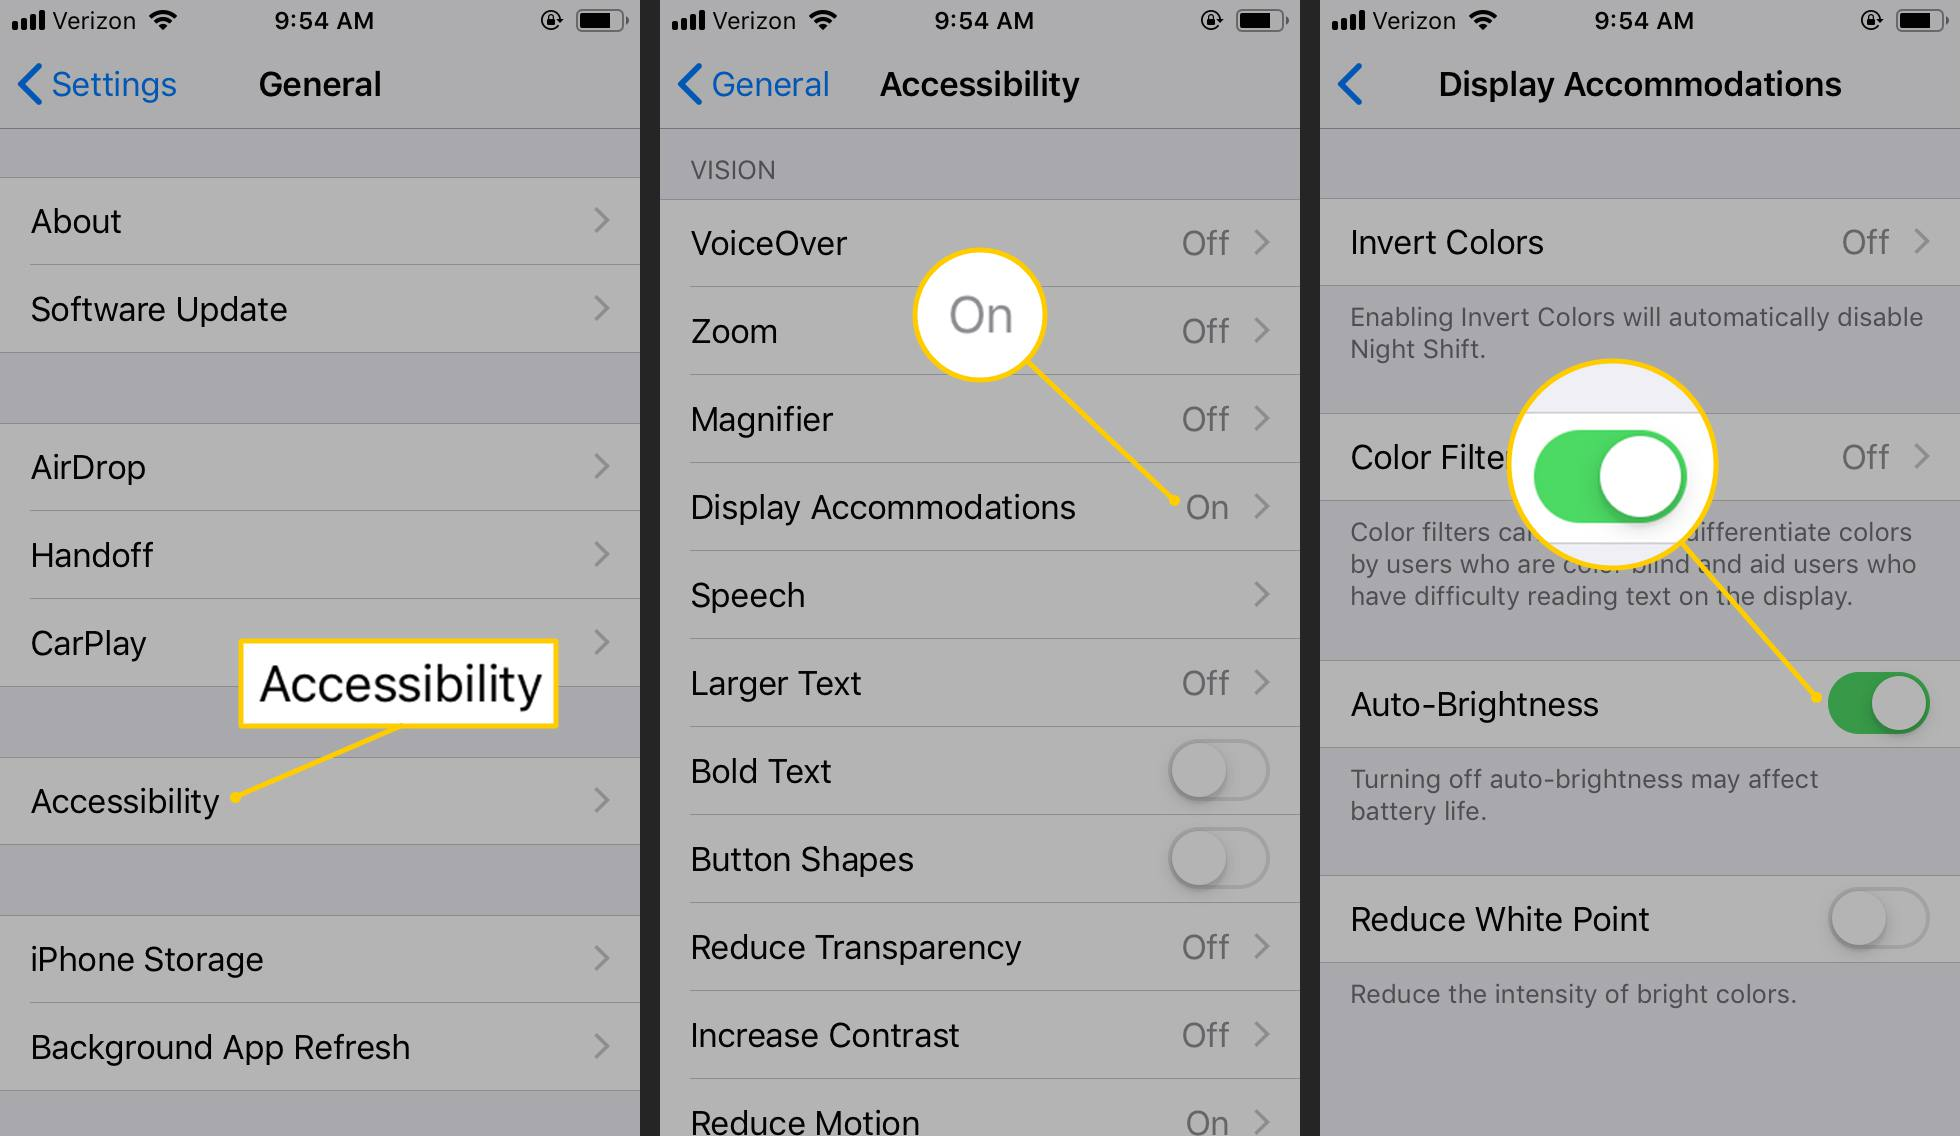 Accessibility, Display Accommodations, Auto-Brightness toggle